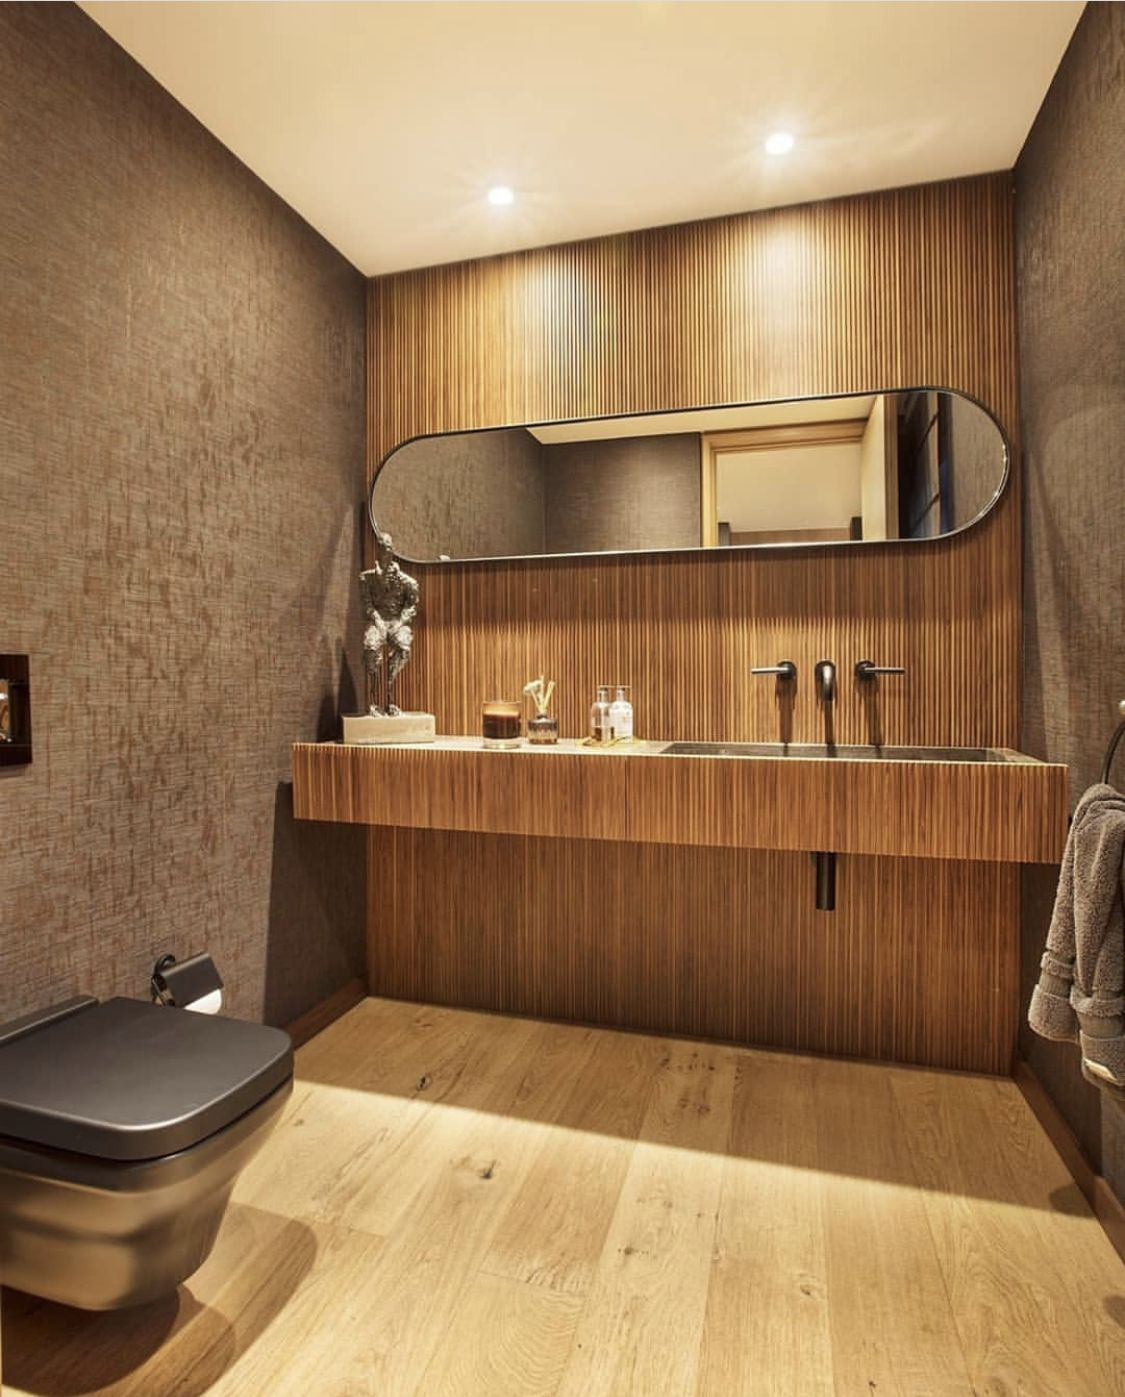 Badezimmer design stand-up-dusche pin by ghiwa mwd on bathrooms in   pinterest  bathroom